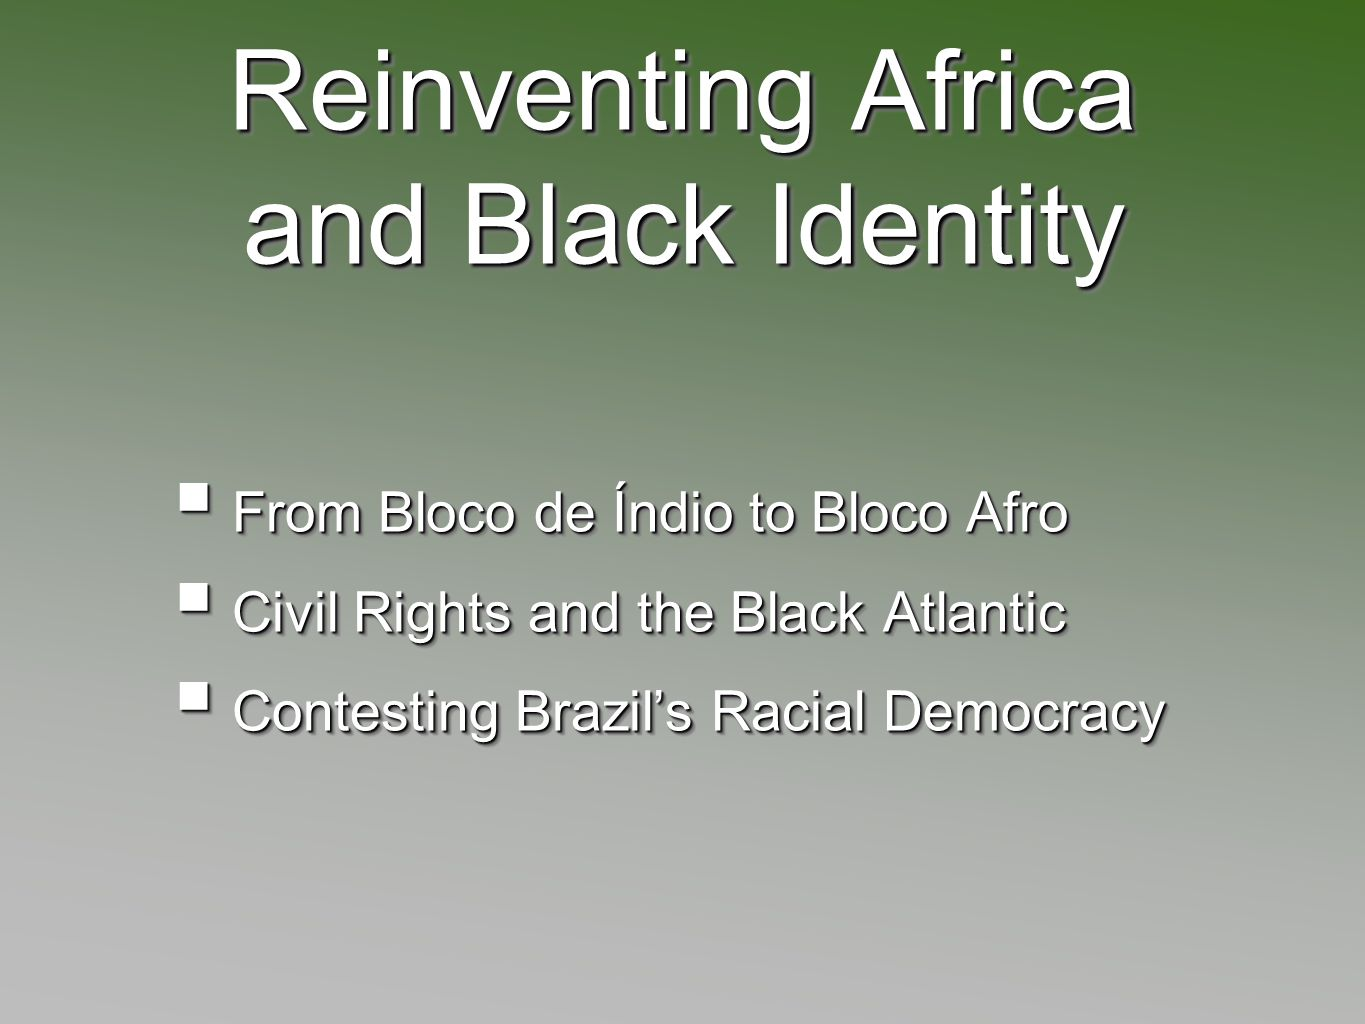 Reinventing Africa and Black Identity From Bloco de Índio to Bloco Afro From Bloco de Índio to Bloco Afro Civil Rights and the Black Atlantic Civil Rights and the Black Atlantic Contesting Brazils Racial Democracy Contesting Brazils Racial Democracy From Bloco de Índio to Bloco Afro From Bloco de Índio to Bloco Afro Civil Rights and the Black Atlantic Civil Rights and the Black Atlantic Contesting Brazils Racial Democracy Contesting Brazils Racial Democracy